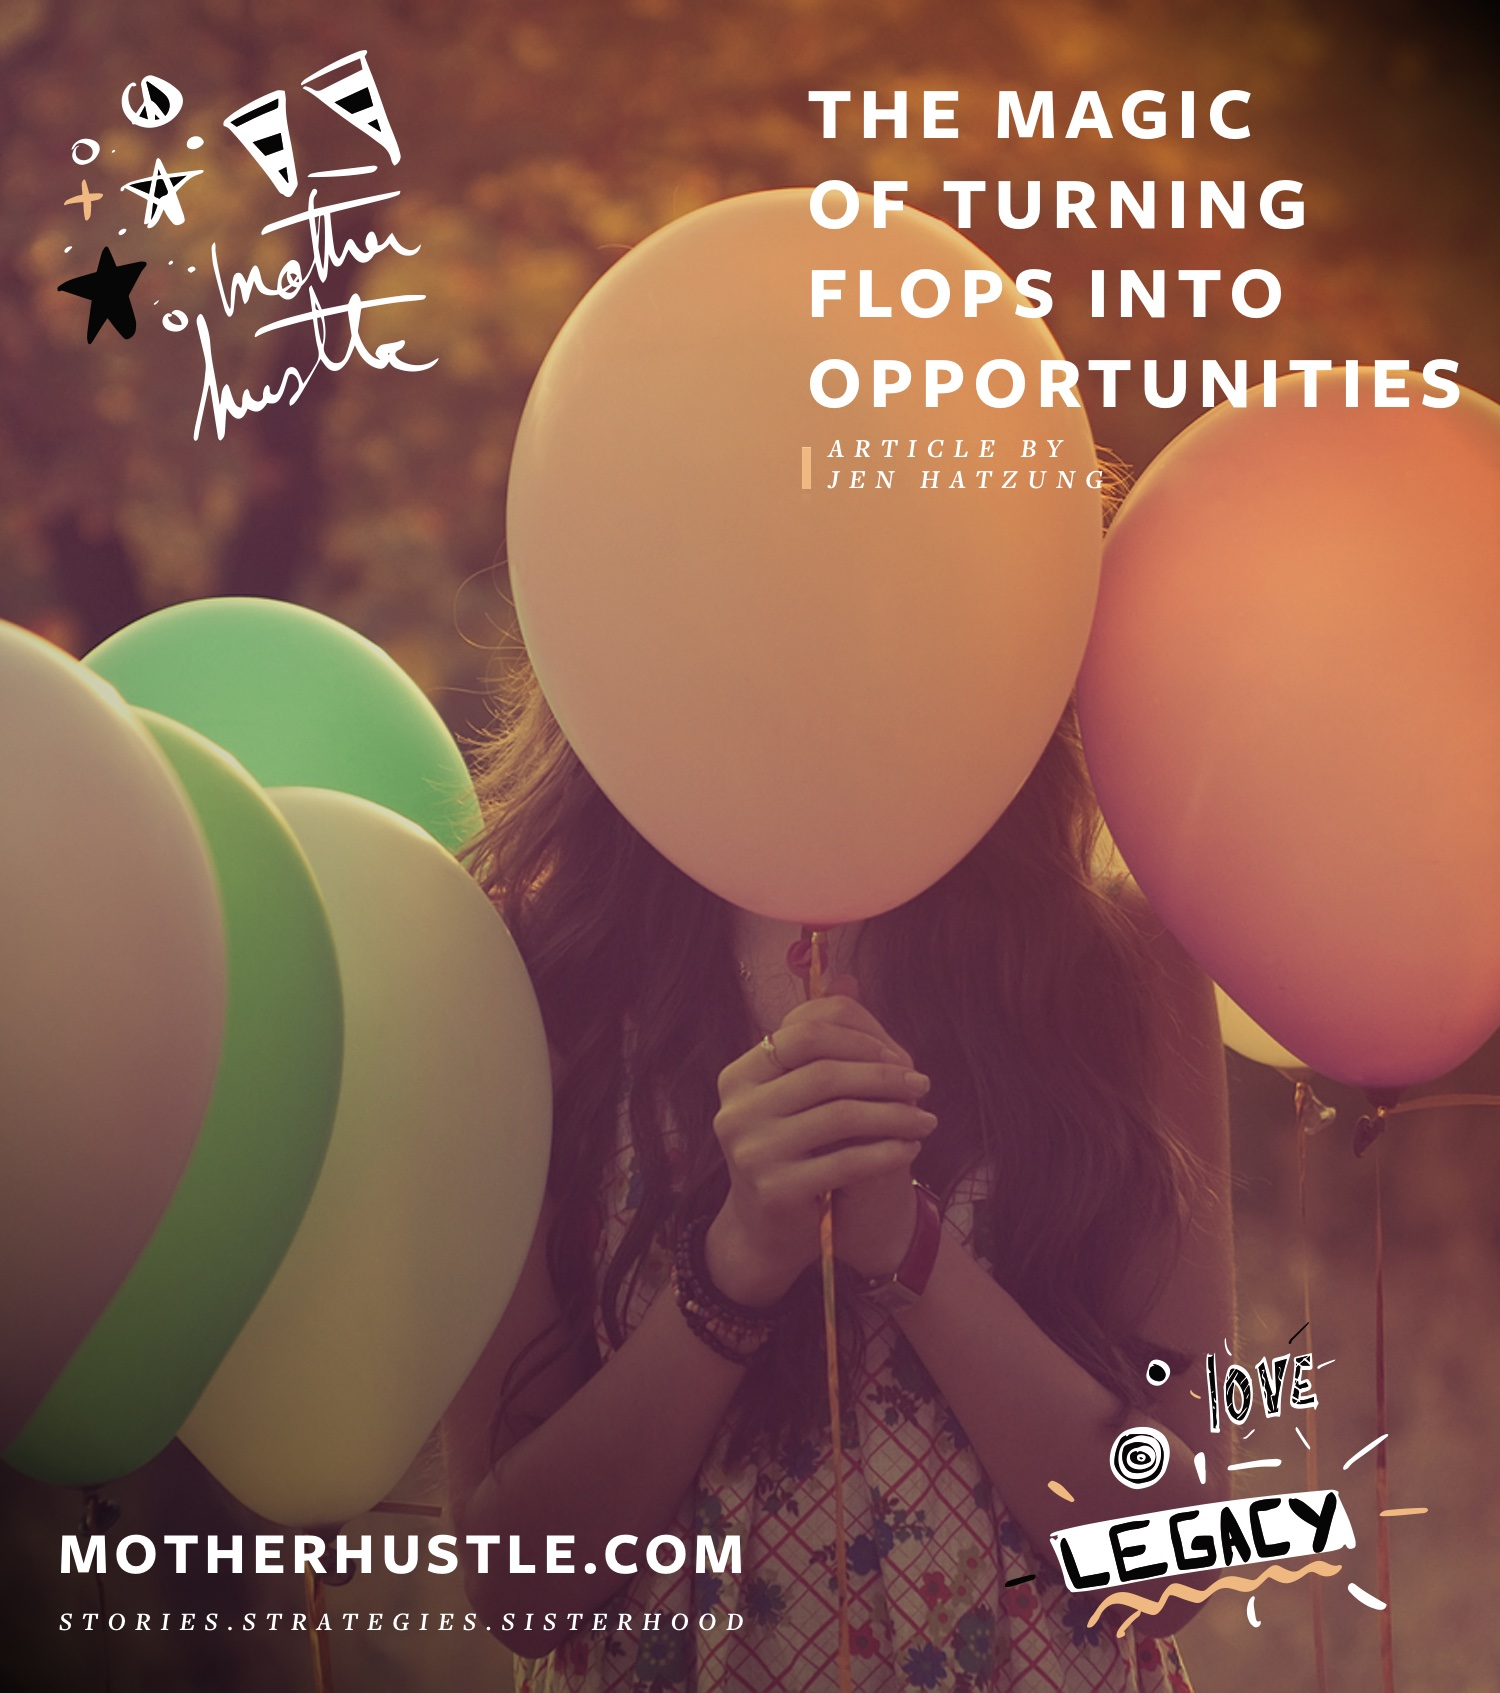 The Magic of Turning Flops Into Opportunities - by Jen Hatzung MotherHustle